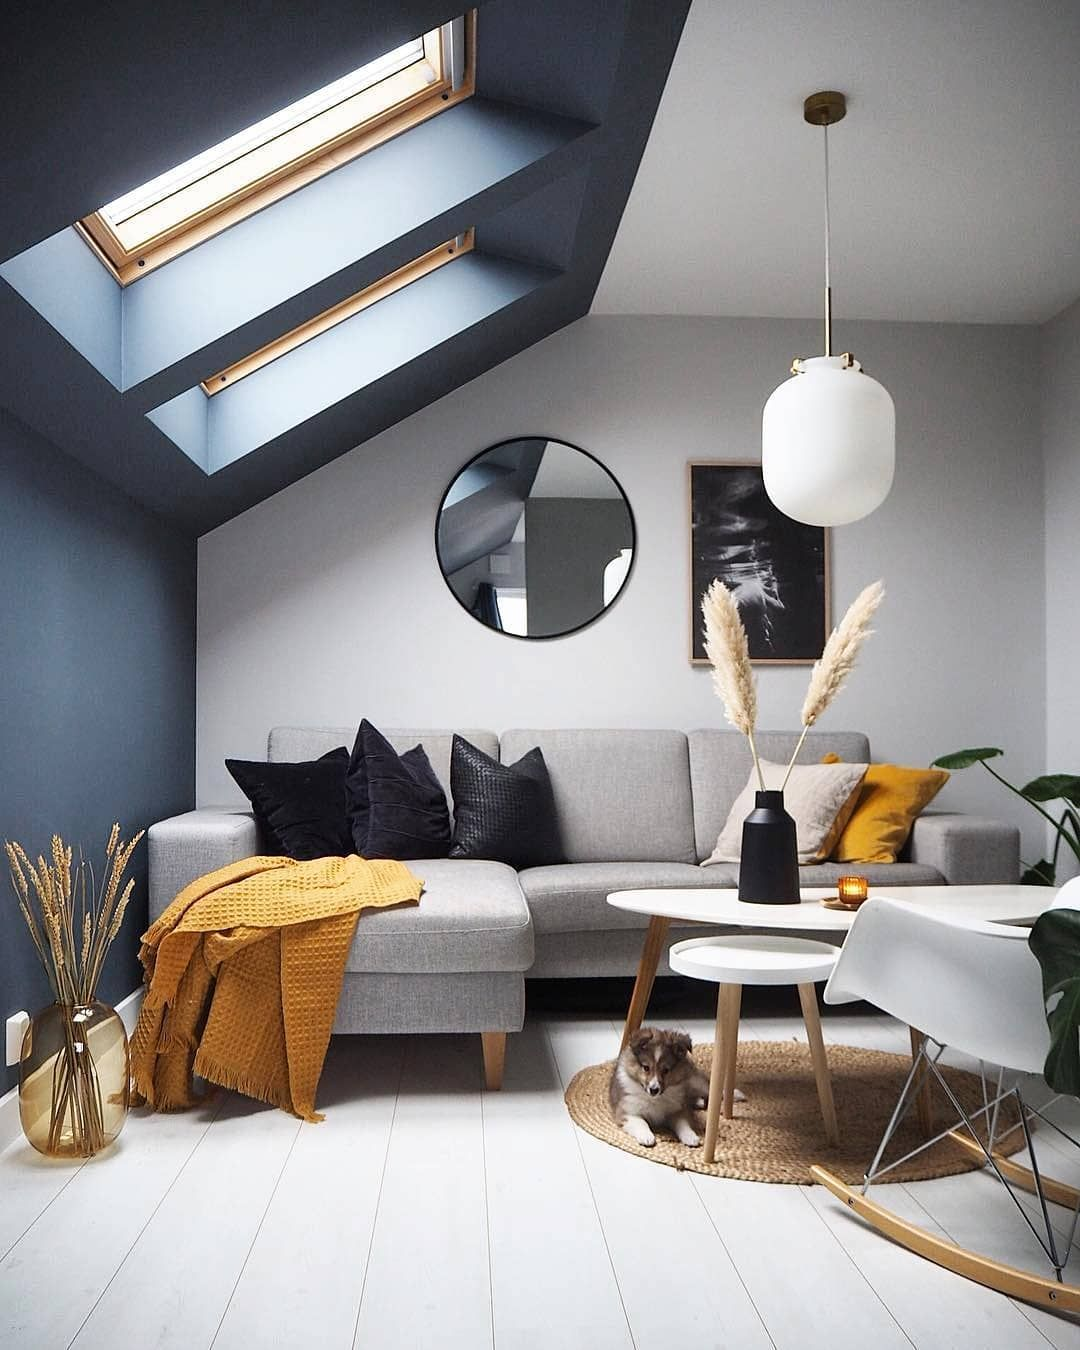 Loft Apartment Living Room Ideas: Swipe Left! What You Guys Think Of This Beautiful Living